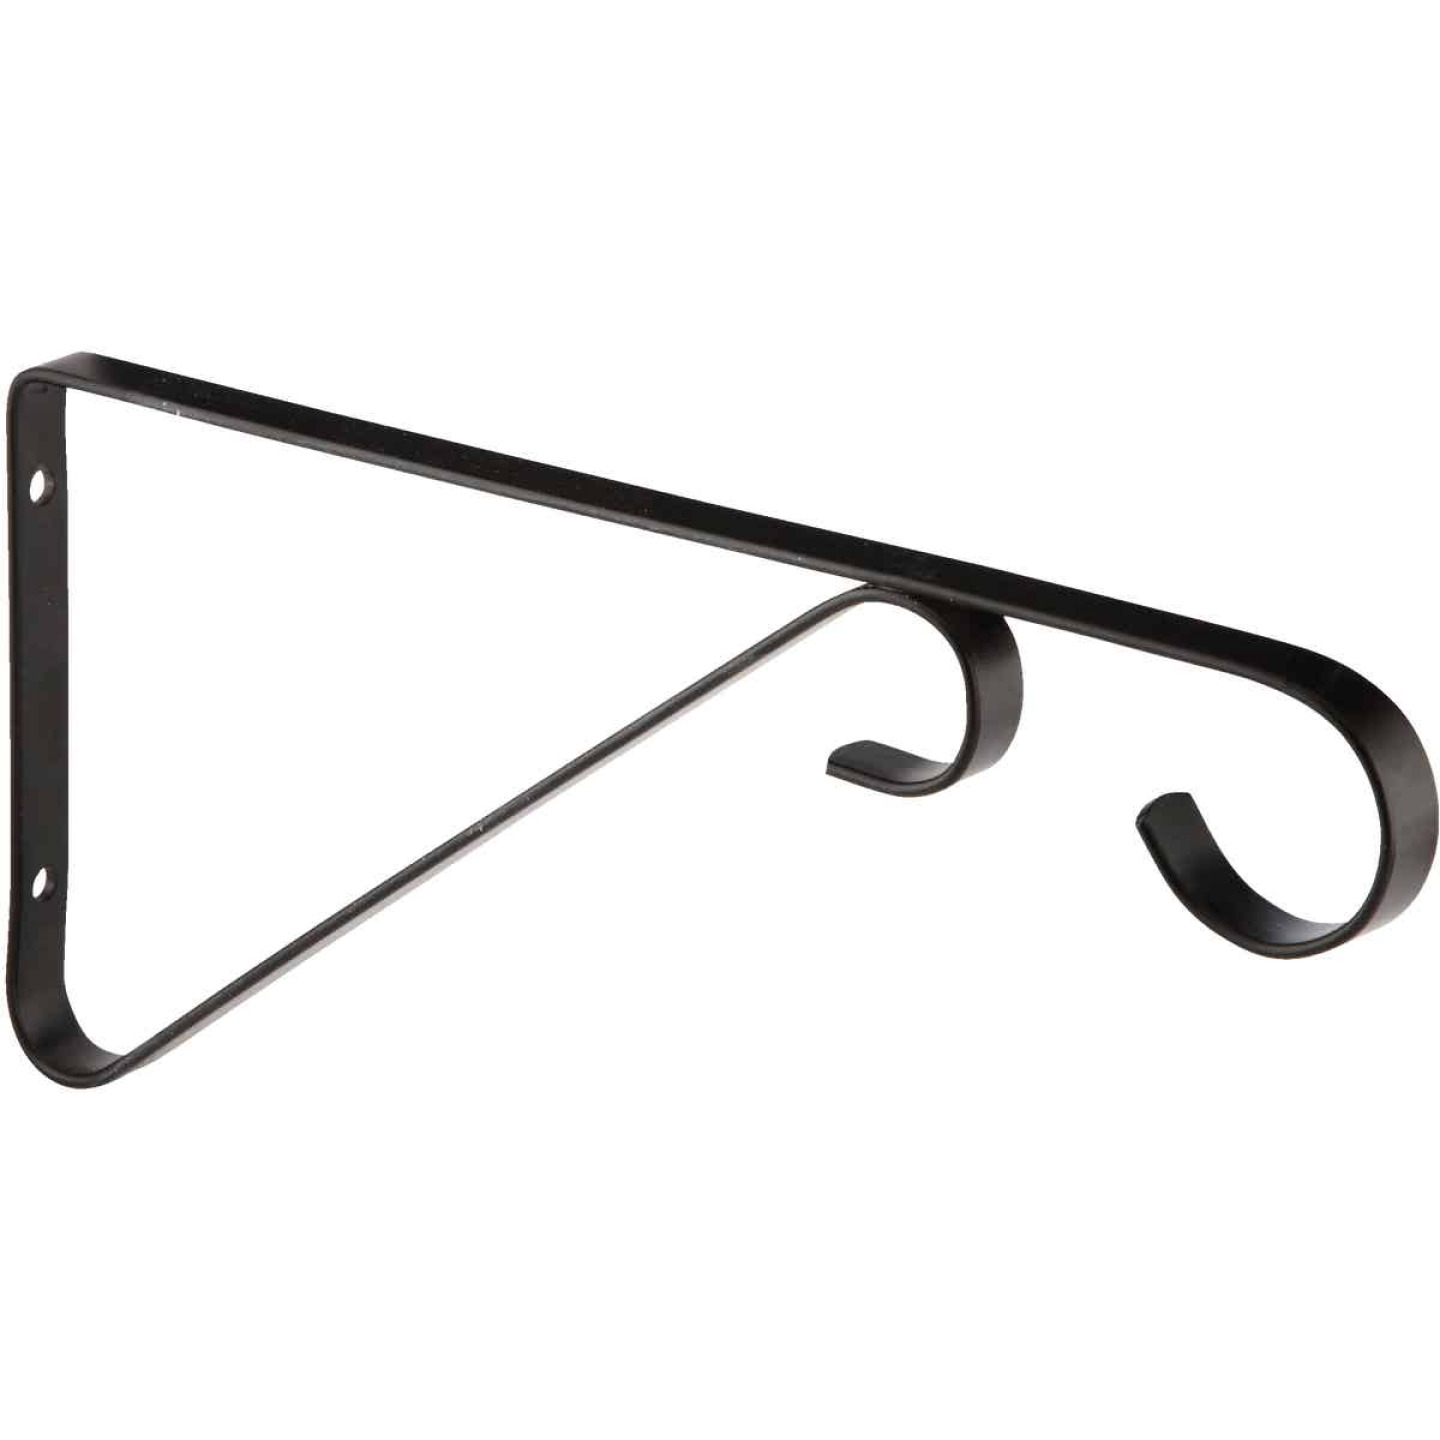 National 9 In. Black Steel Hanging Plant Bracket Image 4